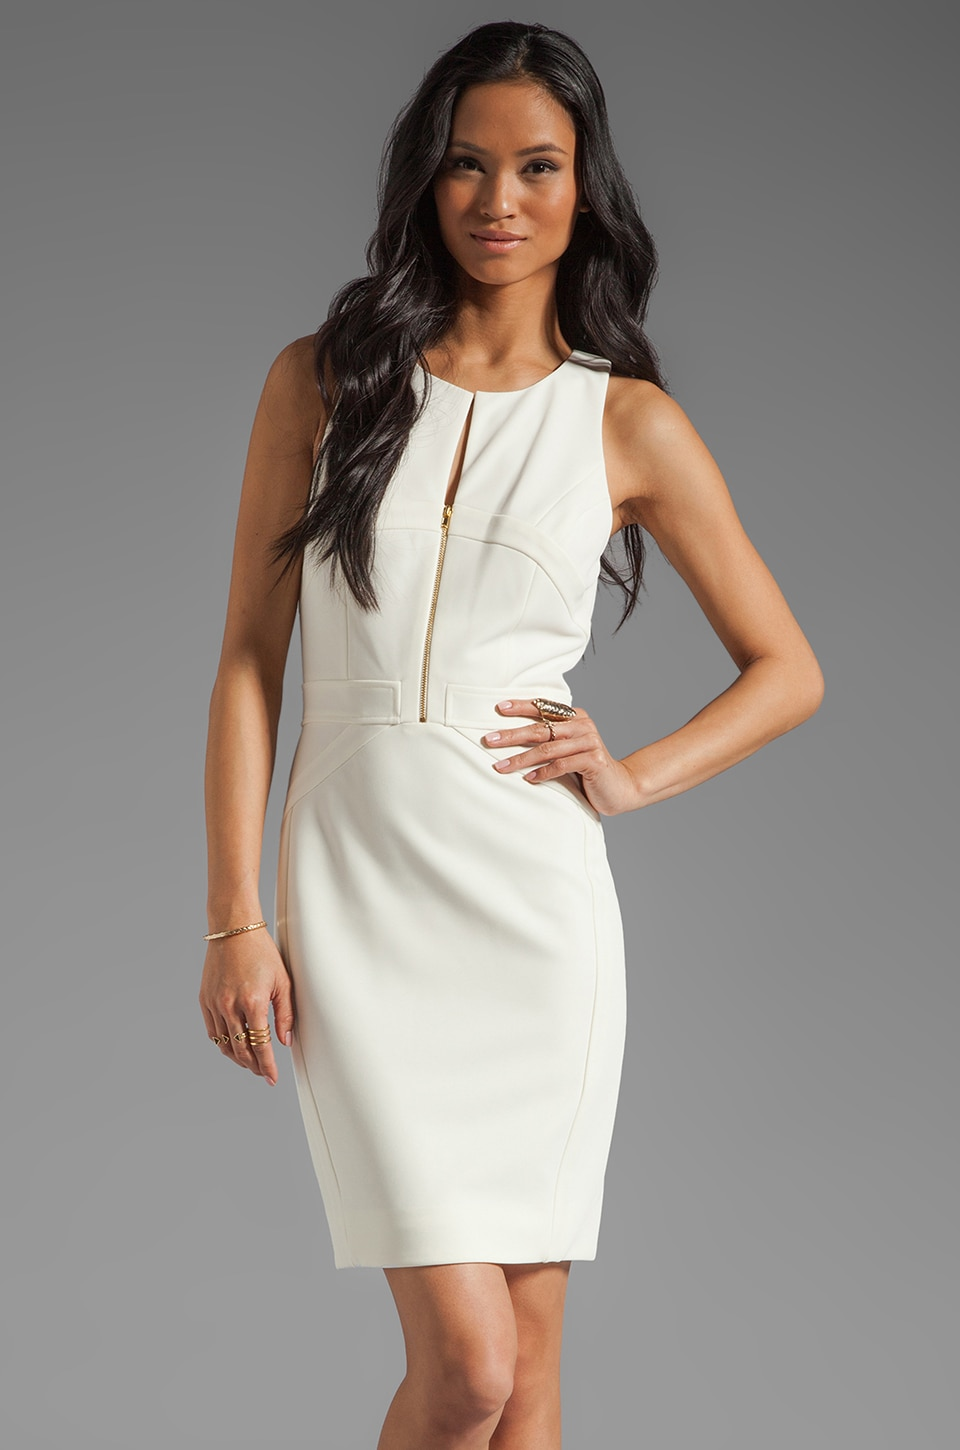 Z Spoke by Zac Posen Sleeveless Body Con Dress in Winter White